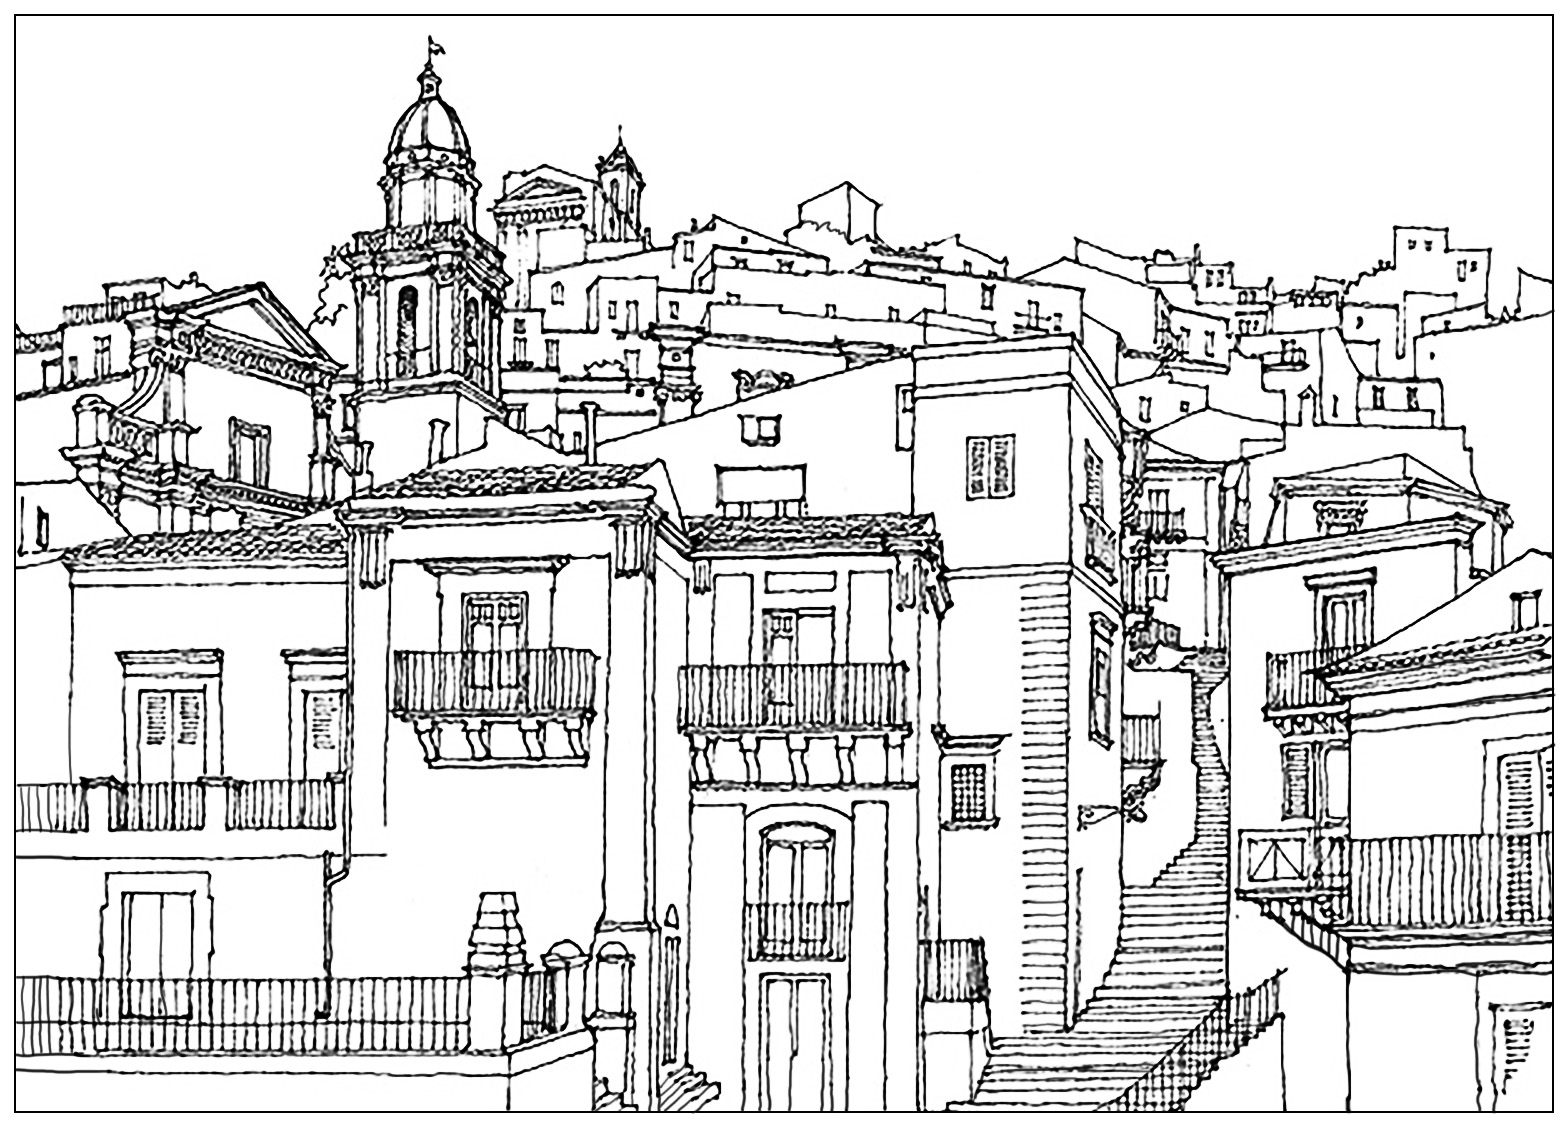 Coloring adult sicilia italia village